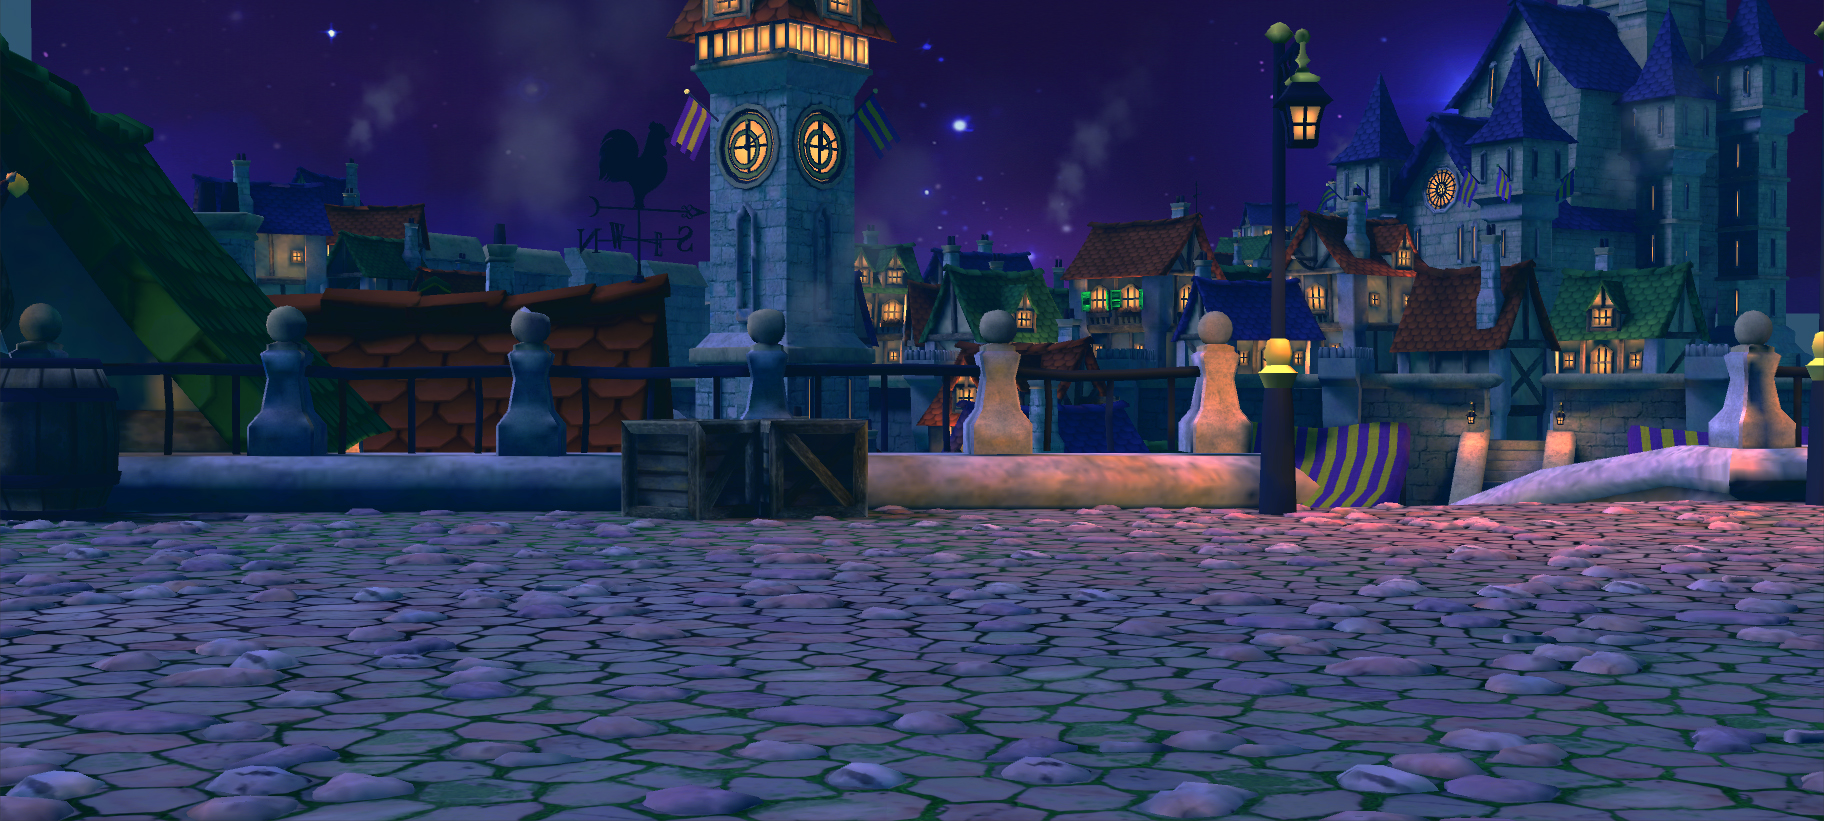 Project Throne - Town Night Battlefield by Zhibade